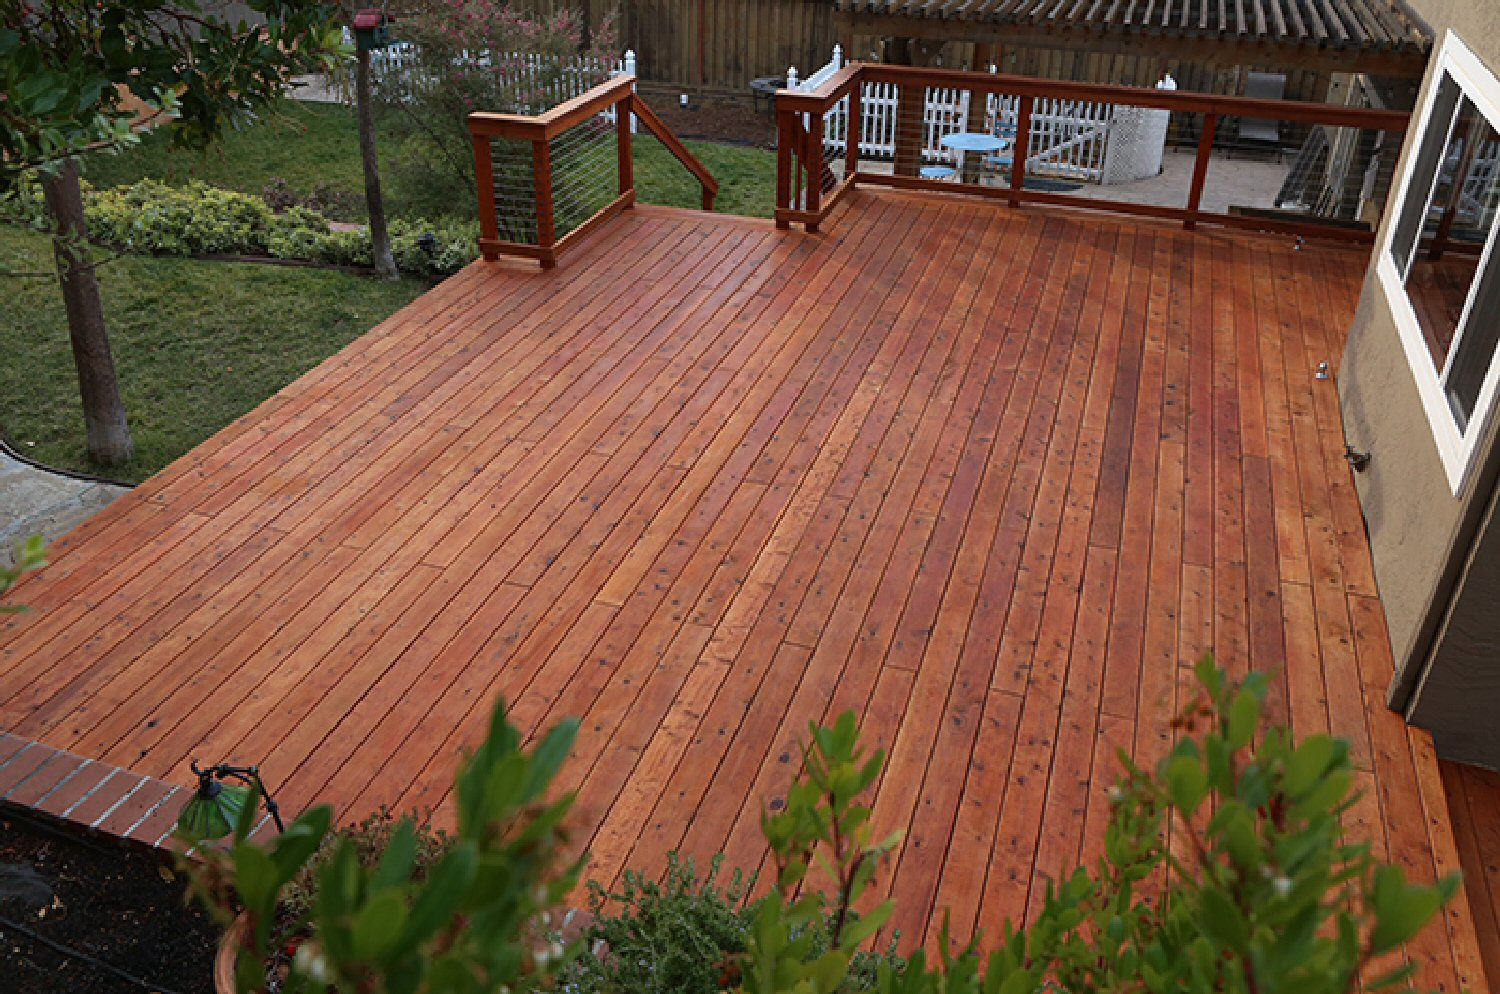 pc hardwood floors linden nj of the best woods for decks and porches within redwood deck 4q7b7981 web crop 59853a4e054ad90011d5f0fc